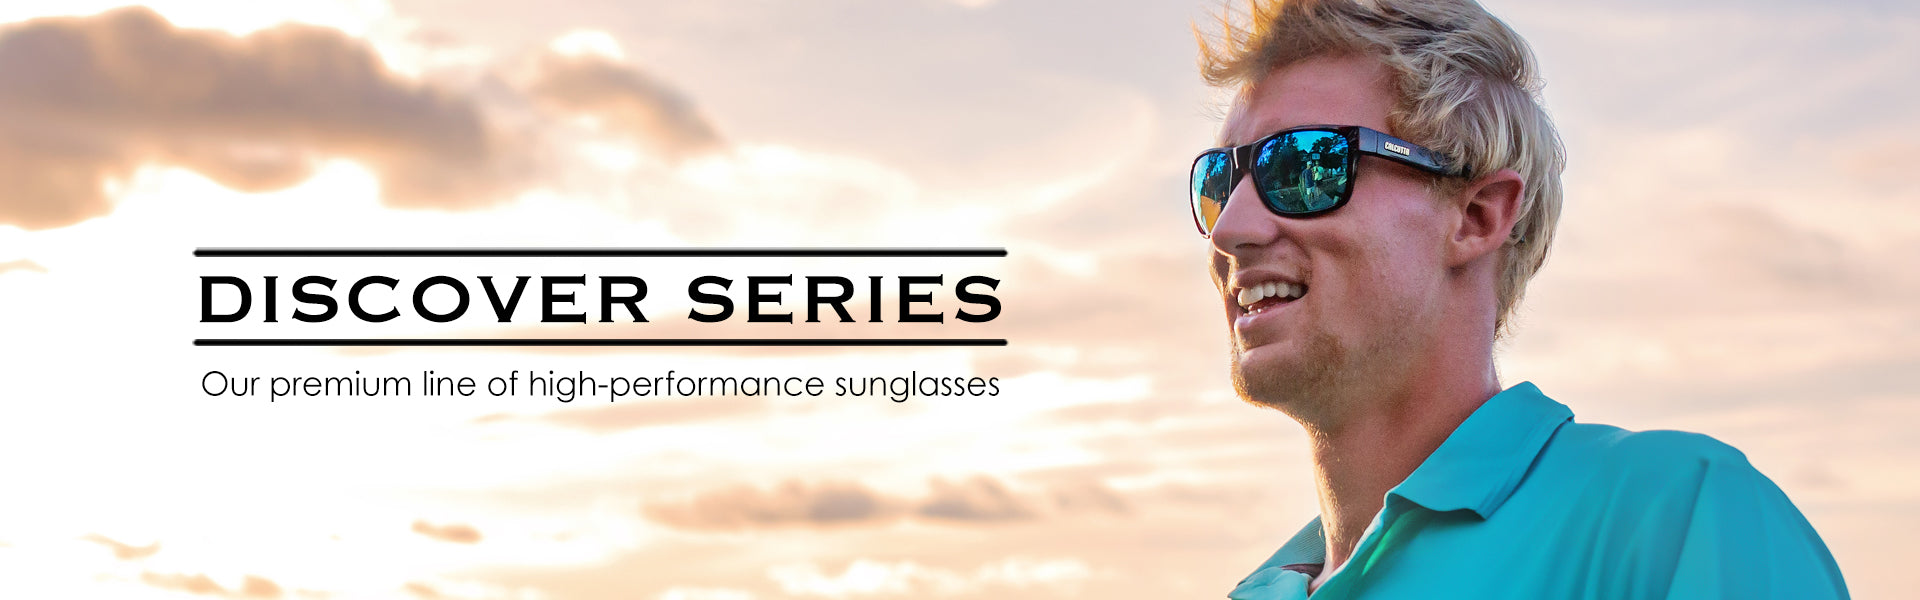 Discover Series Sunglasses